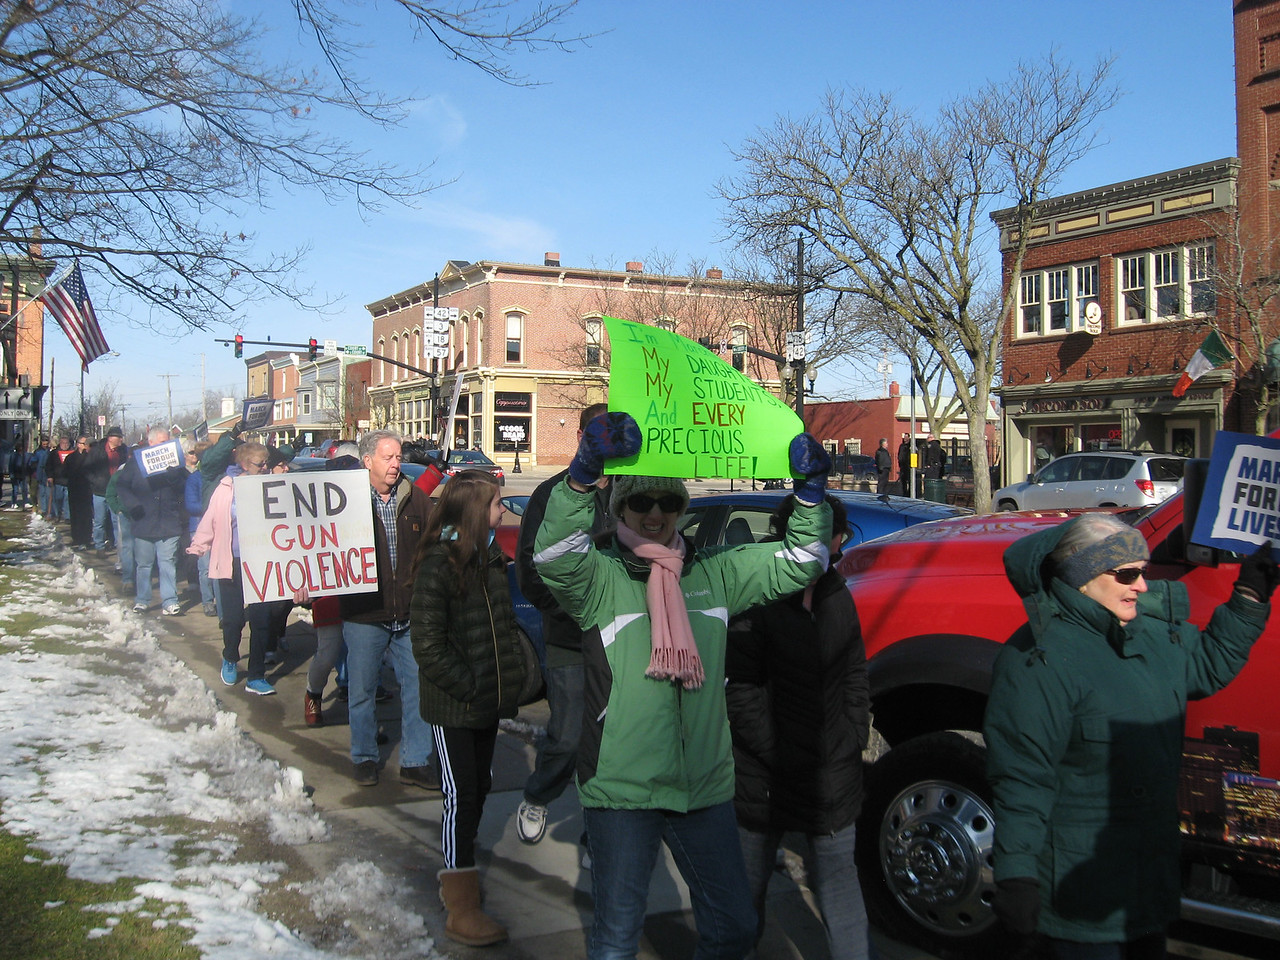 BOB SANDRICK / GAZETTE Demonstrators favoring stricter gun regulations march around Public Square on Saturday morning in Medina. They were taking part in the March for Our Lives campaign occurring throughout the nation.